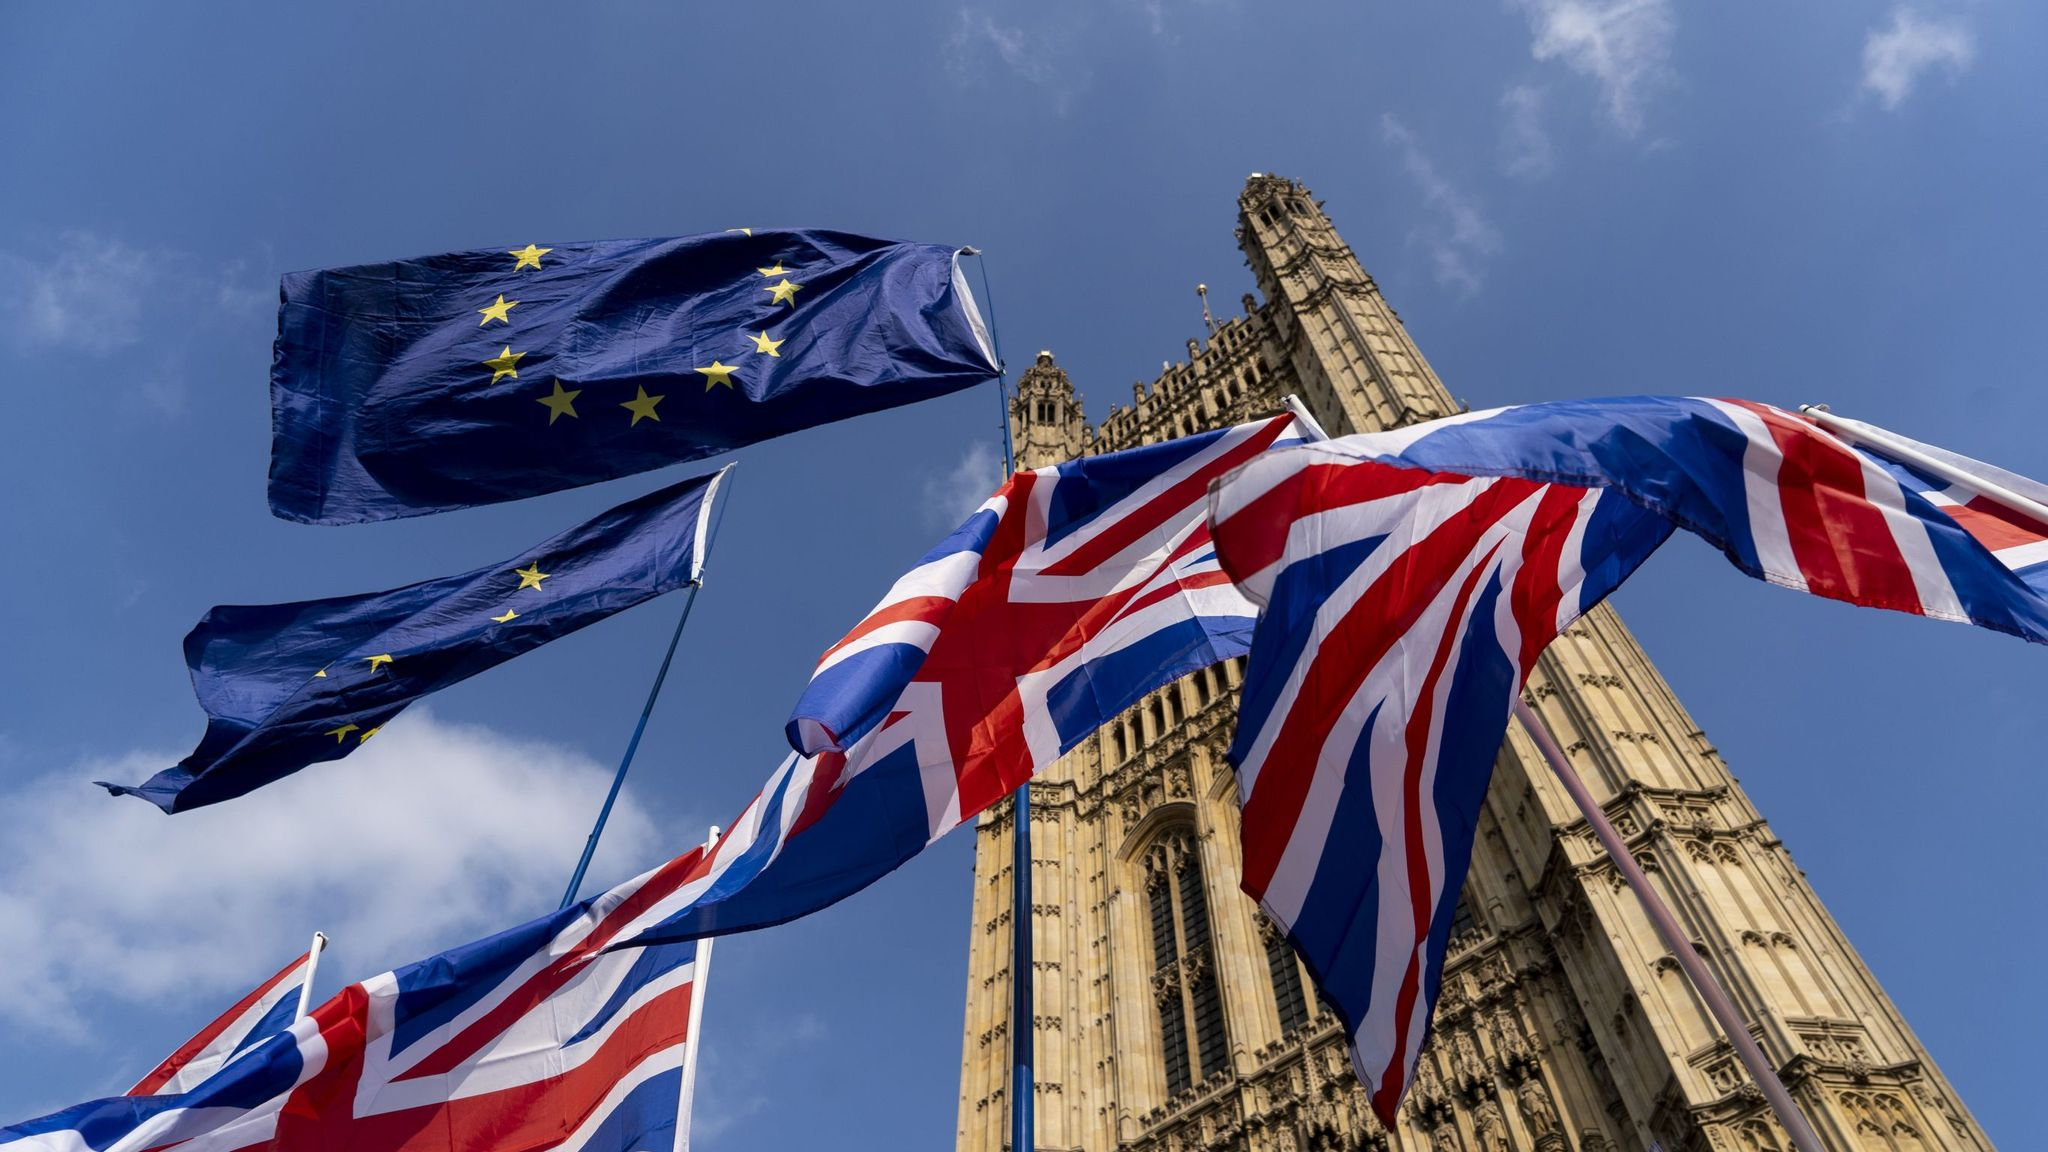 MPs withhold approval for Brexit deal - so what happens next?